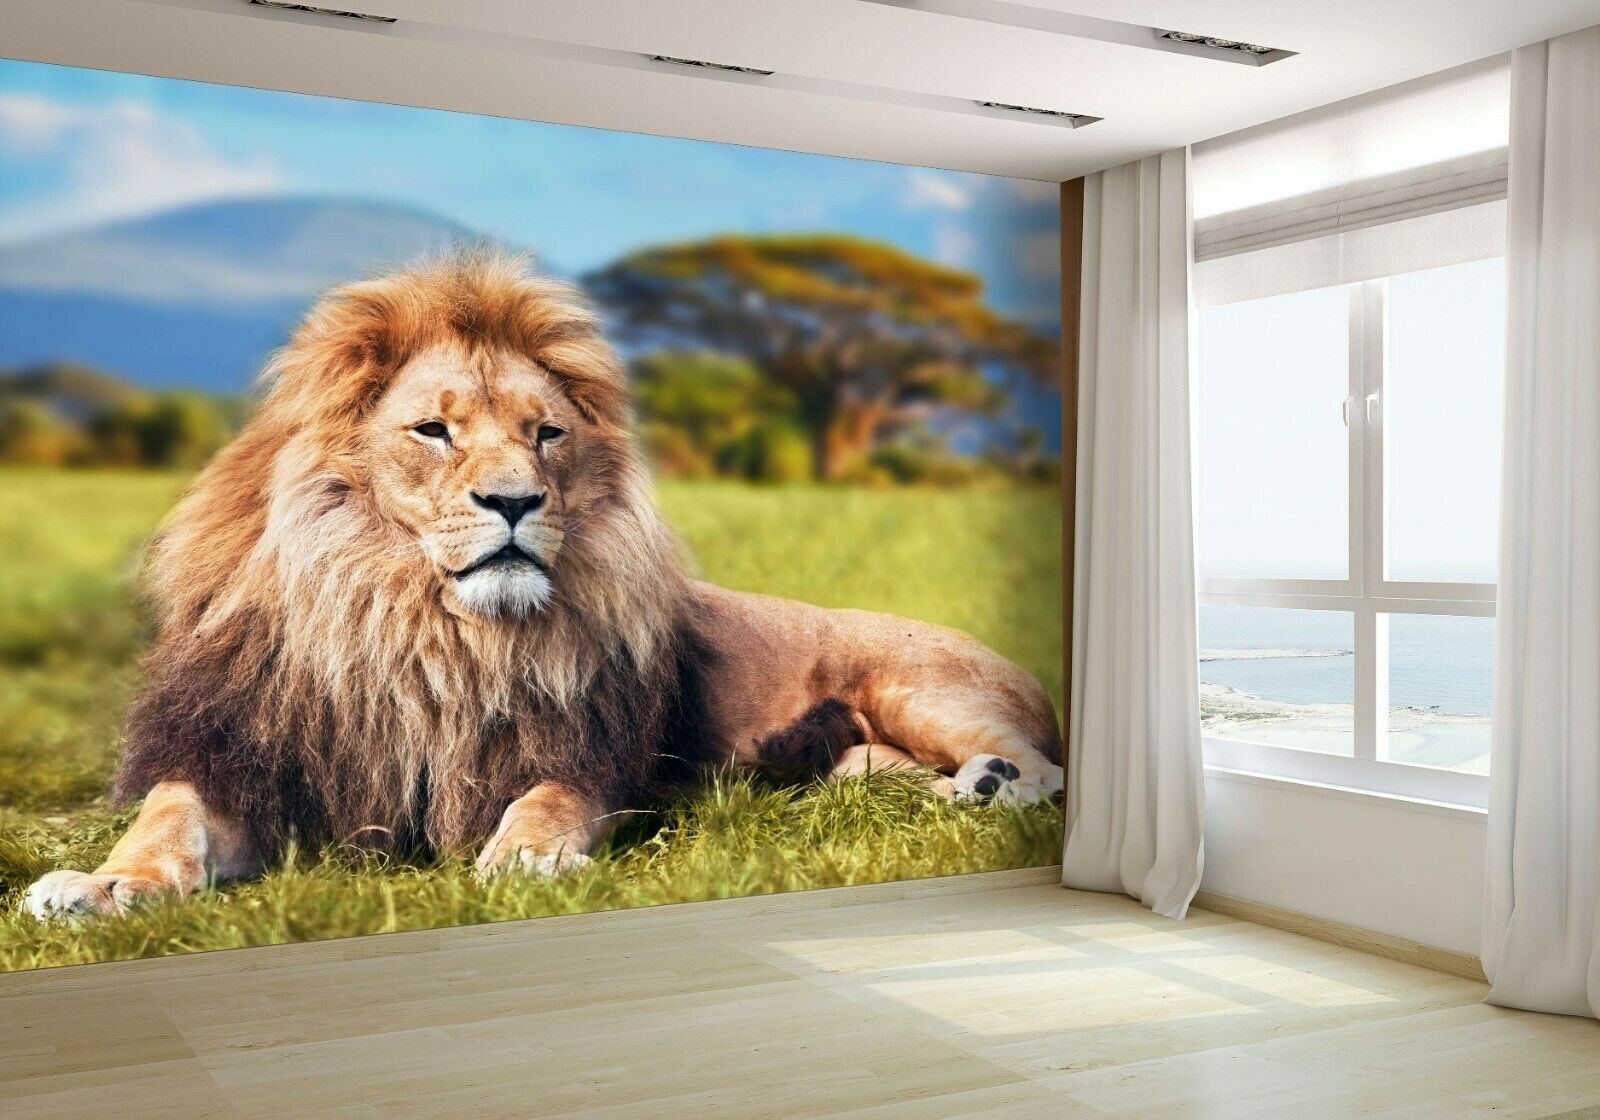 Big Lion Lying on Grass Wallpaper Mural Photo 23696791 budget paper